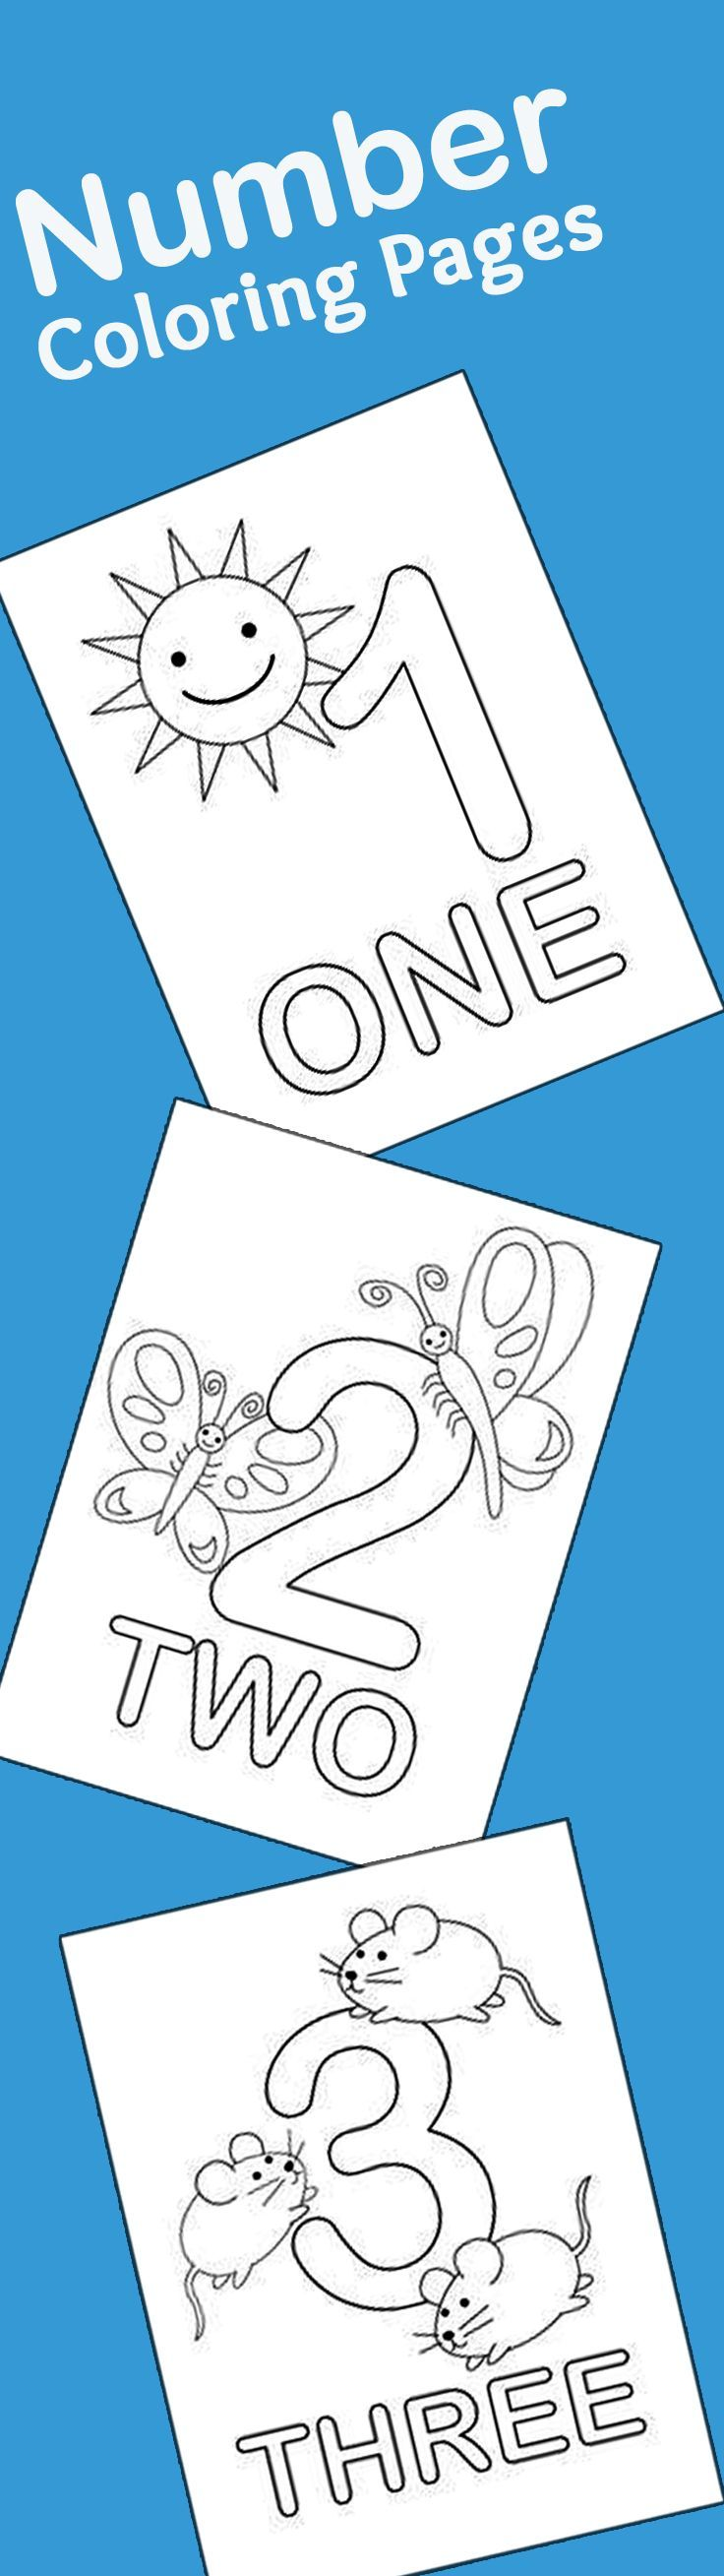 number 21 coloring pages - photo#34